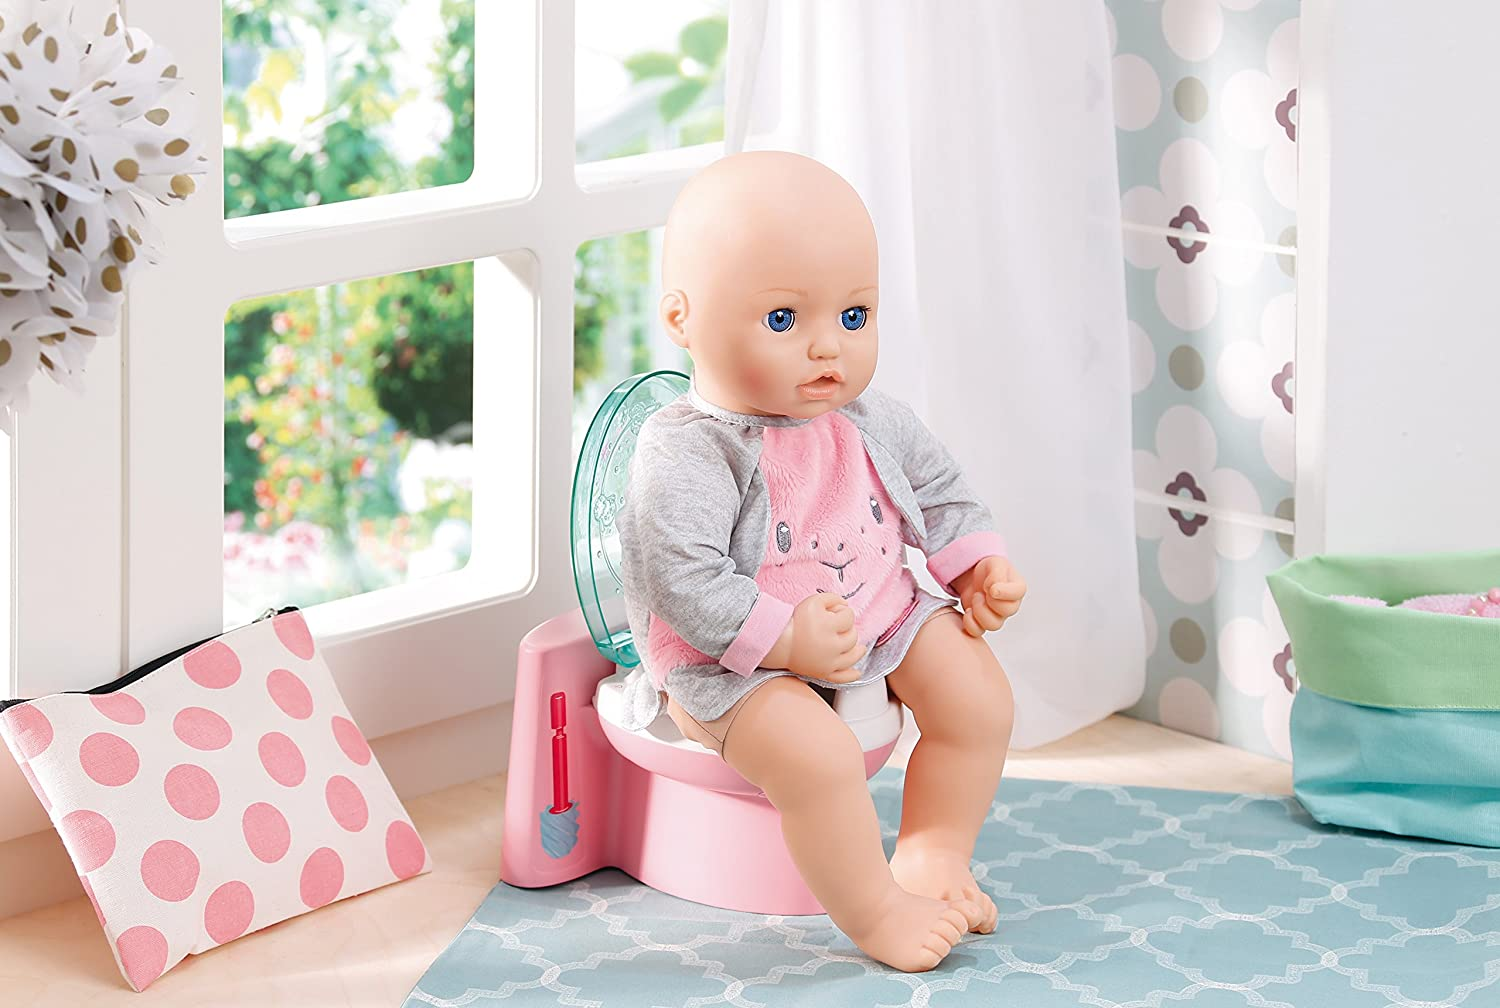 Baby Annabell 700723 Fancy Toilet  Amazon.co.uk  Toys   Games c6440034698ab